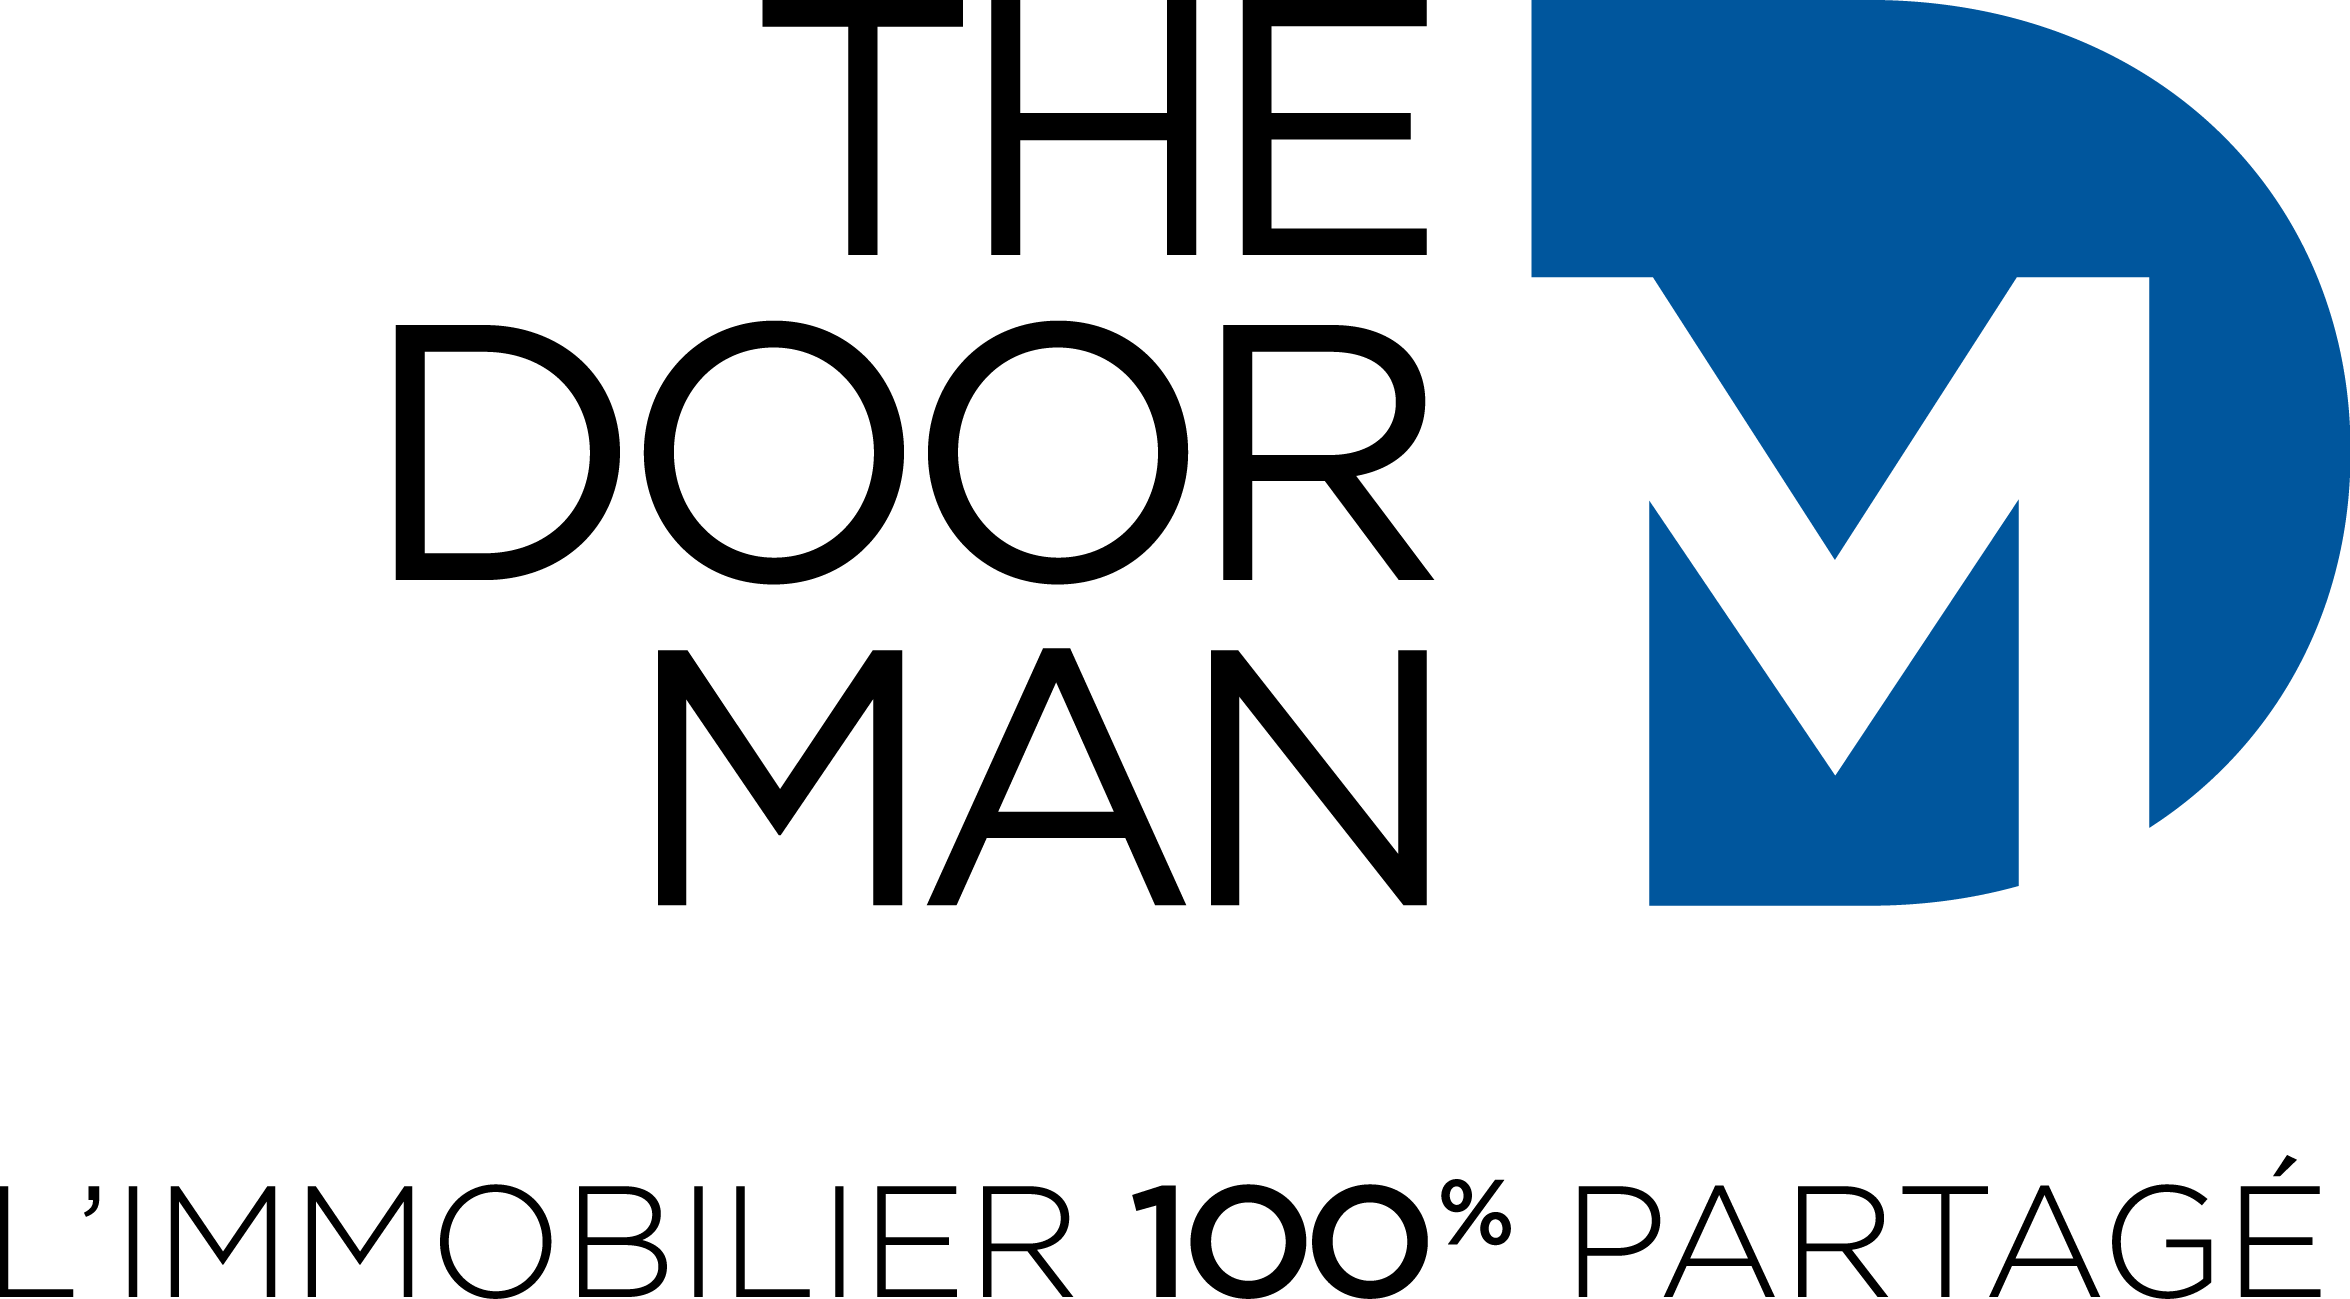 THE DOOR MAN